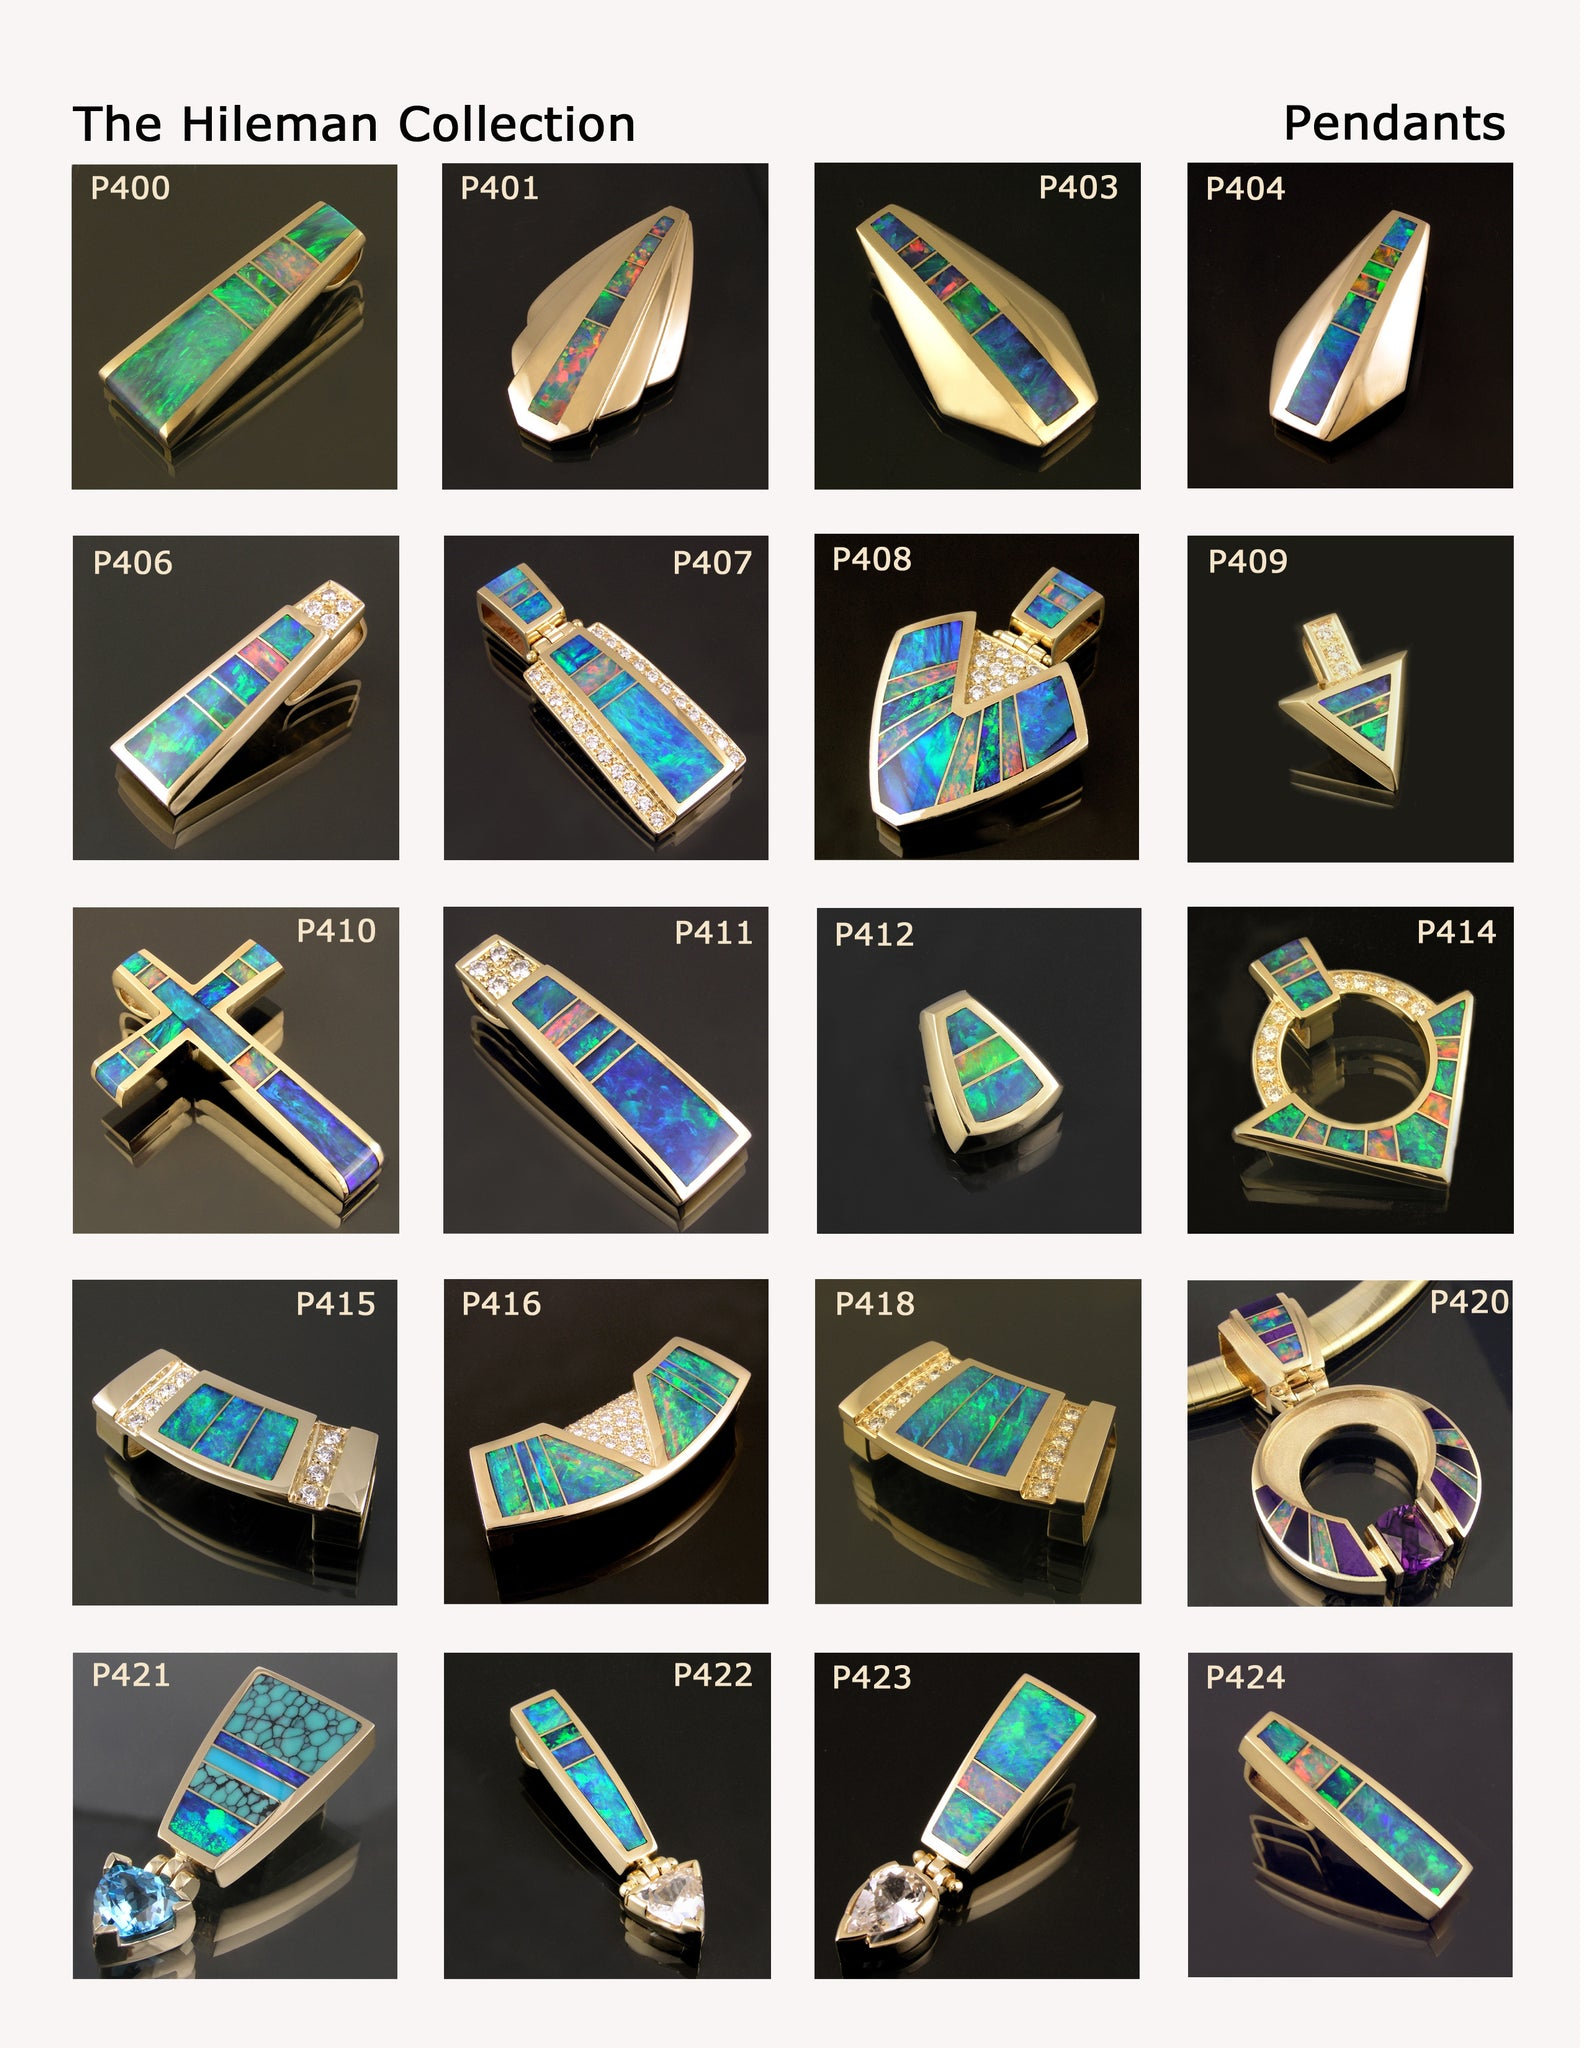 Opal pendants by The Hileman Collection.  Australian opal inlaid pendants in 14k gold.